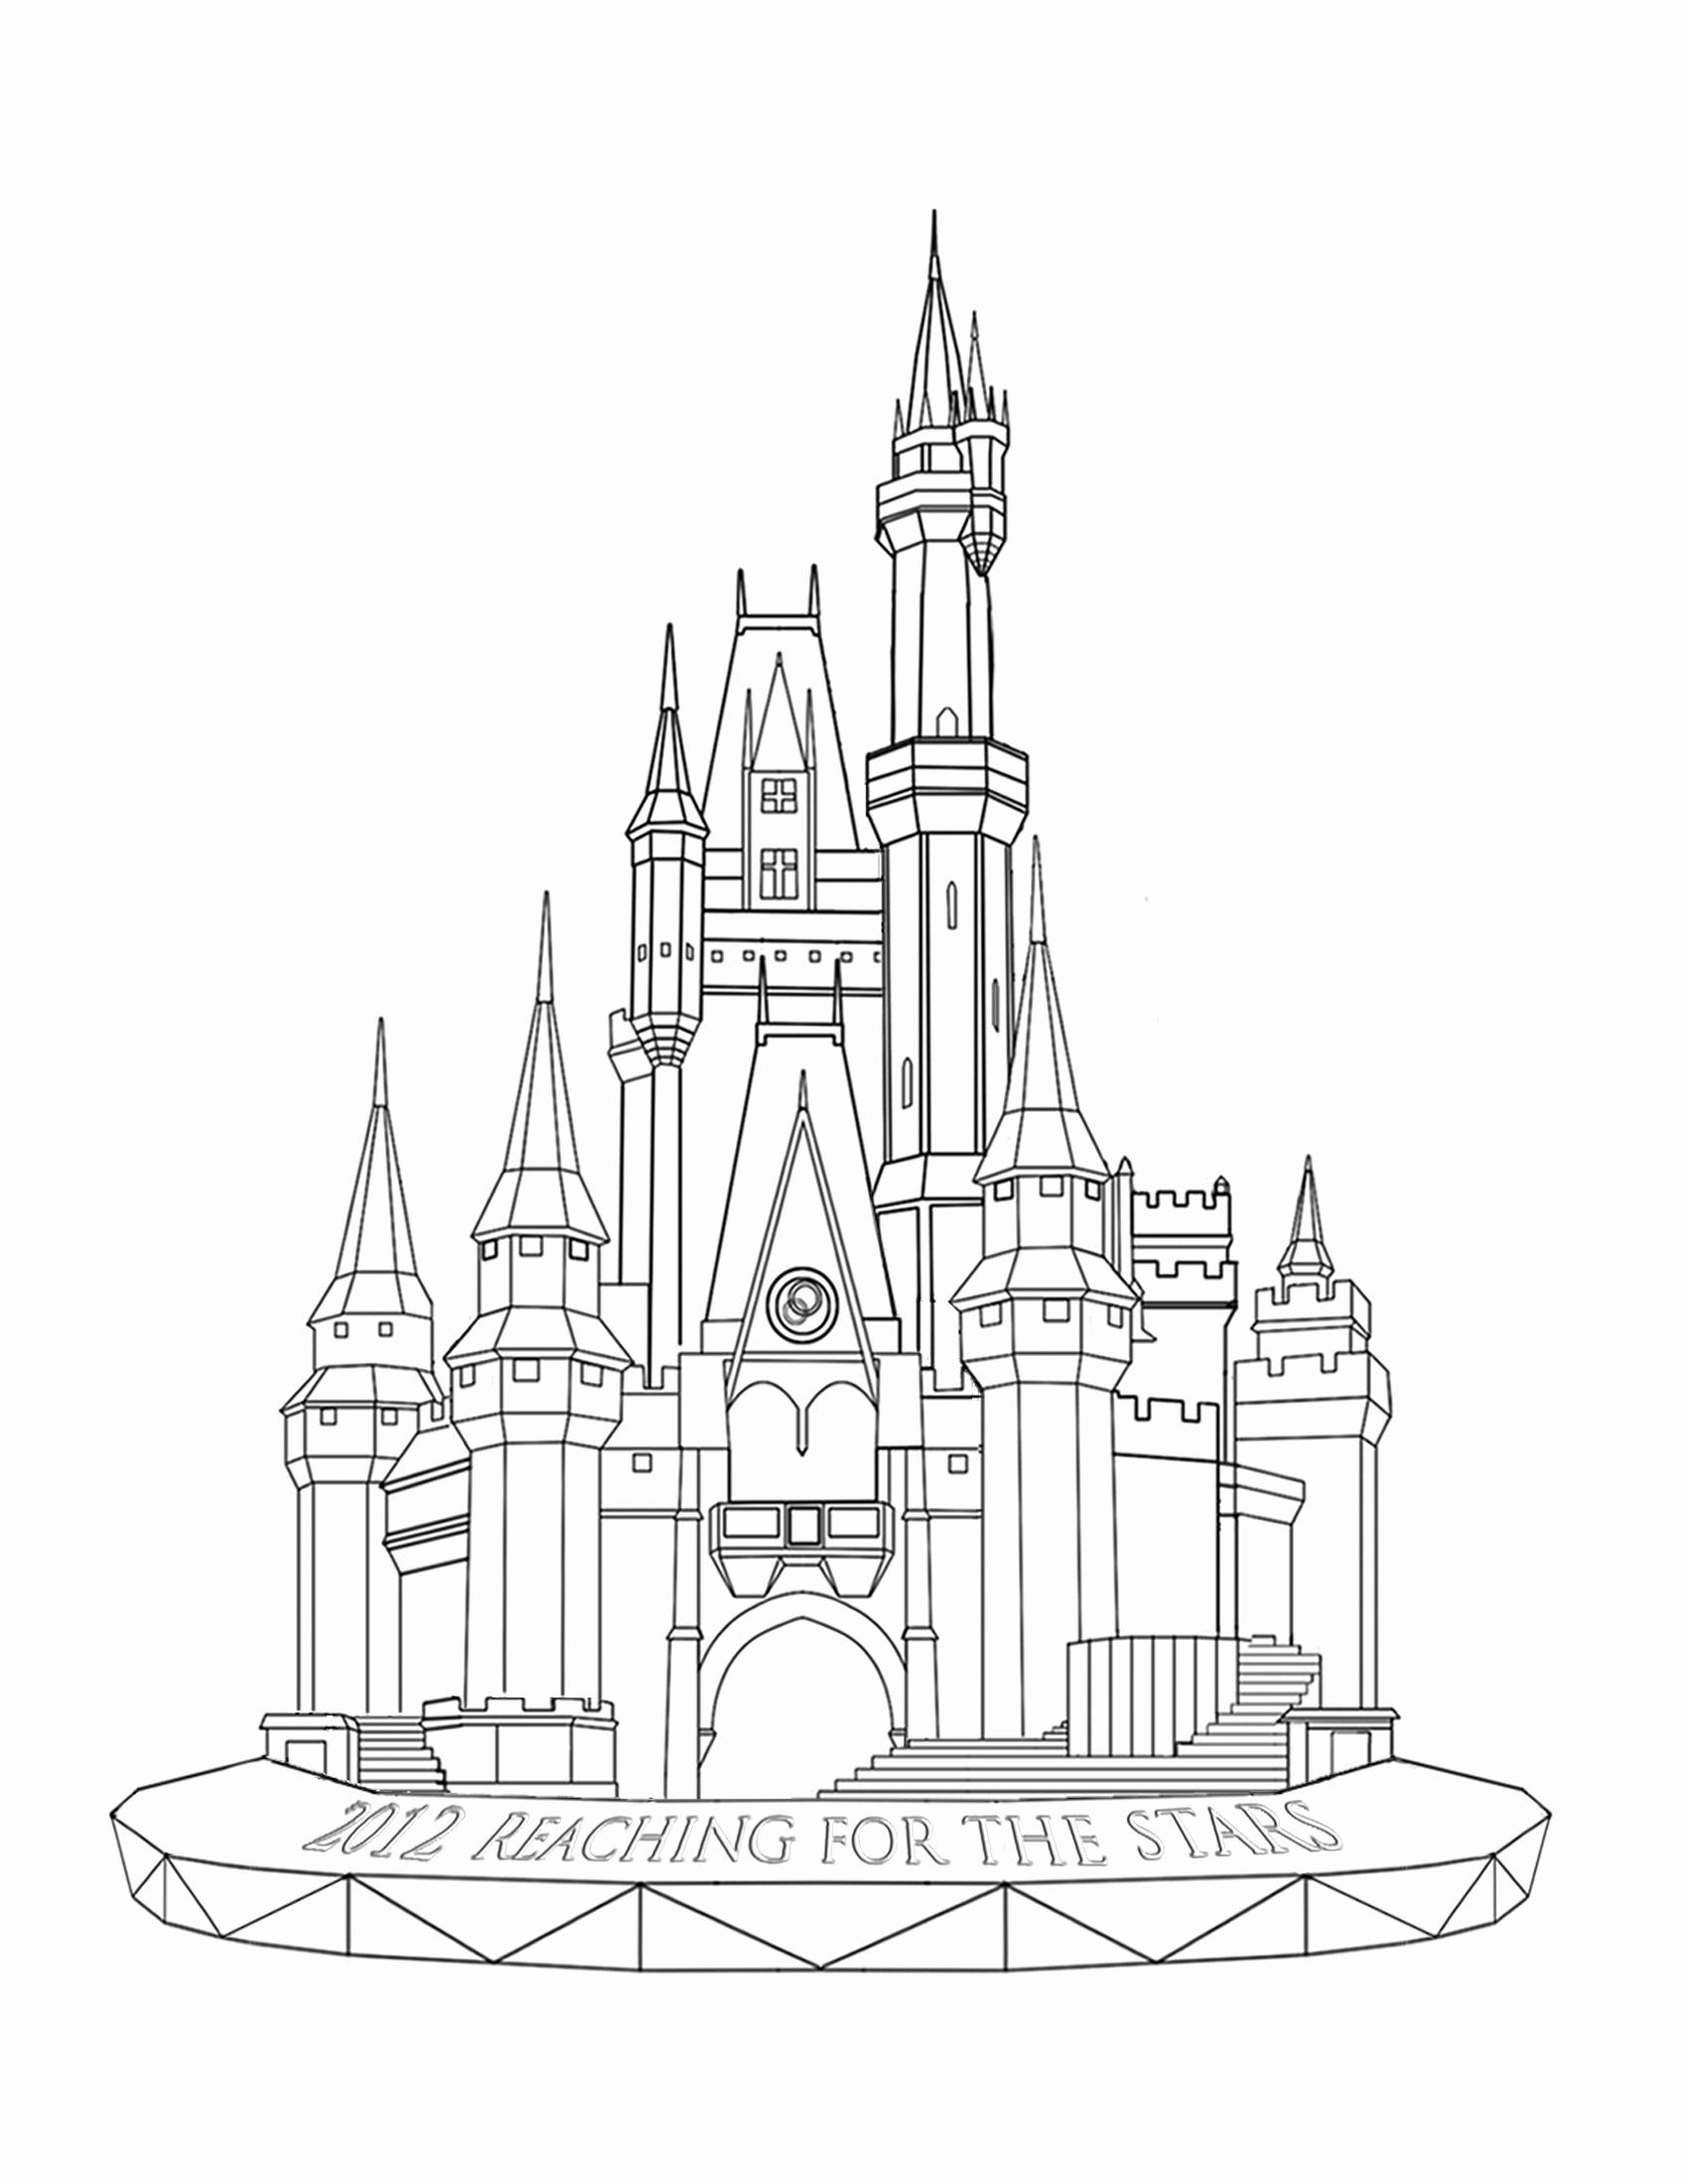 - Walt Disney World Coloring Pages In 2020 (With Images) Disney